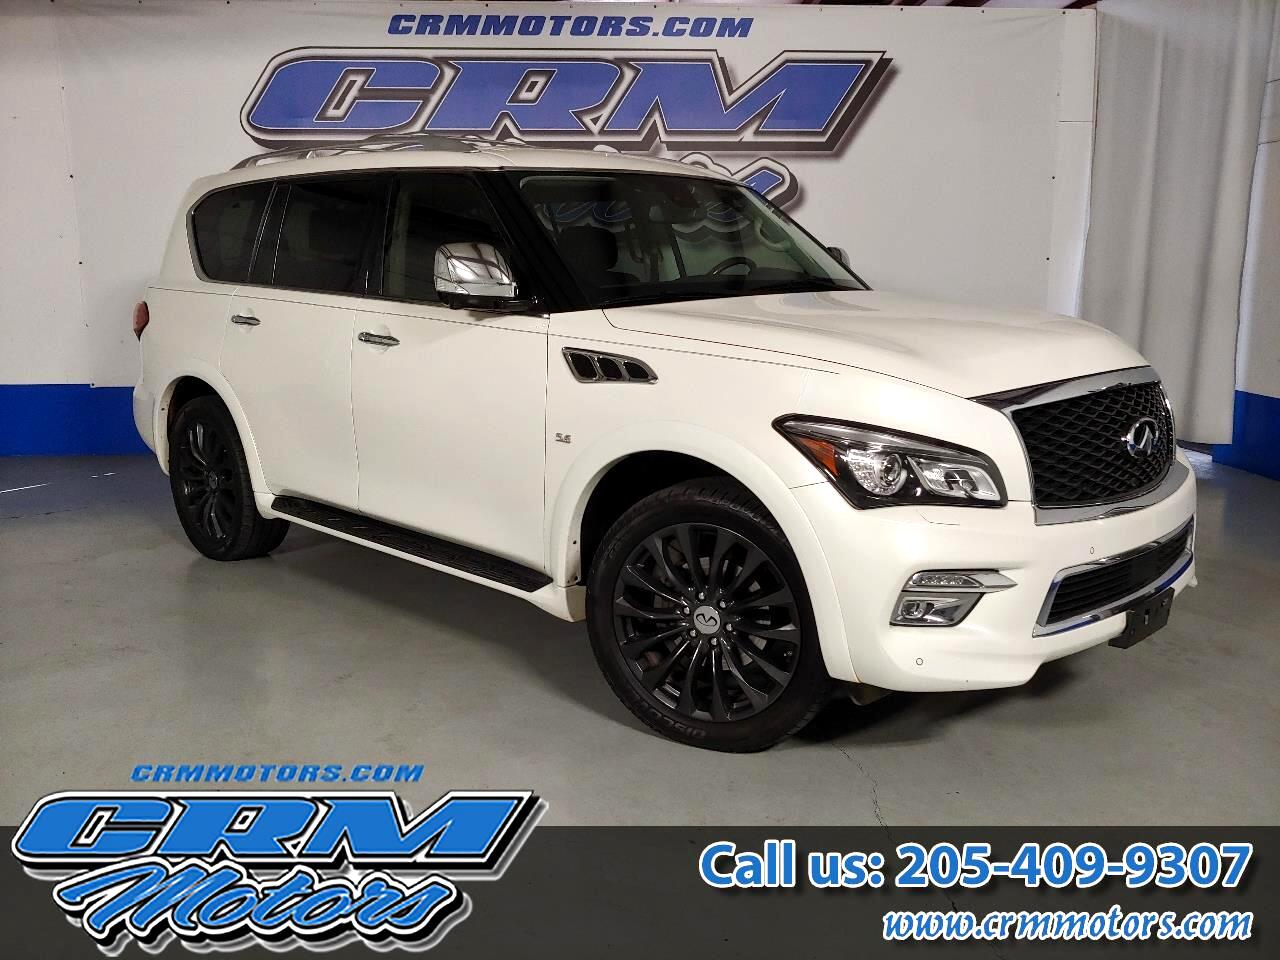 2015 Infiniti QX80 FULLY LOADED PREMIUM FACTORY WHEELS VERY CLEAN!